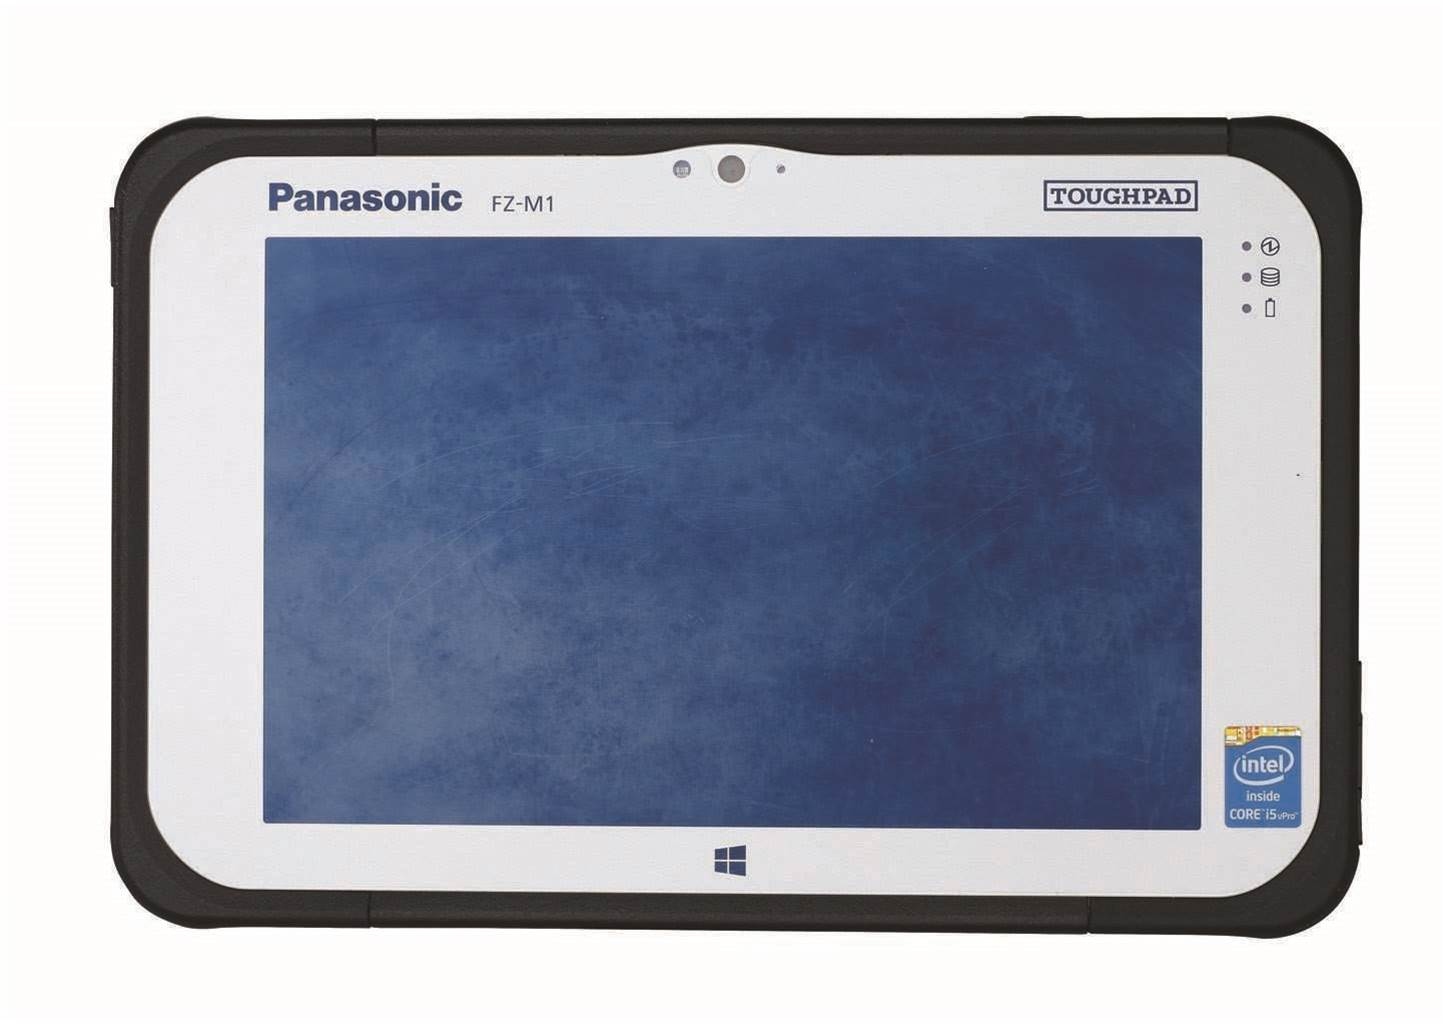 Review: Panasonic Toughpad FZ-M1